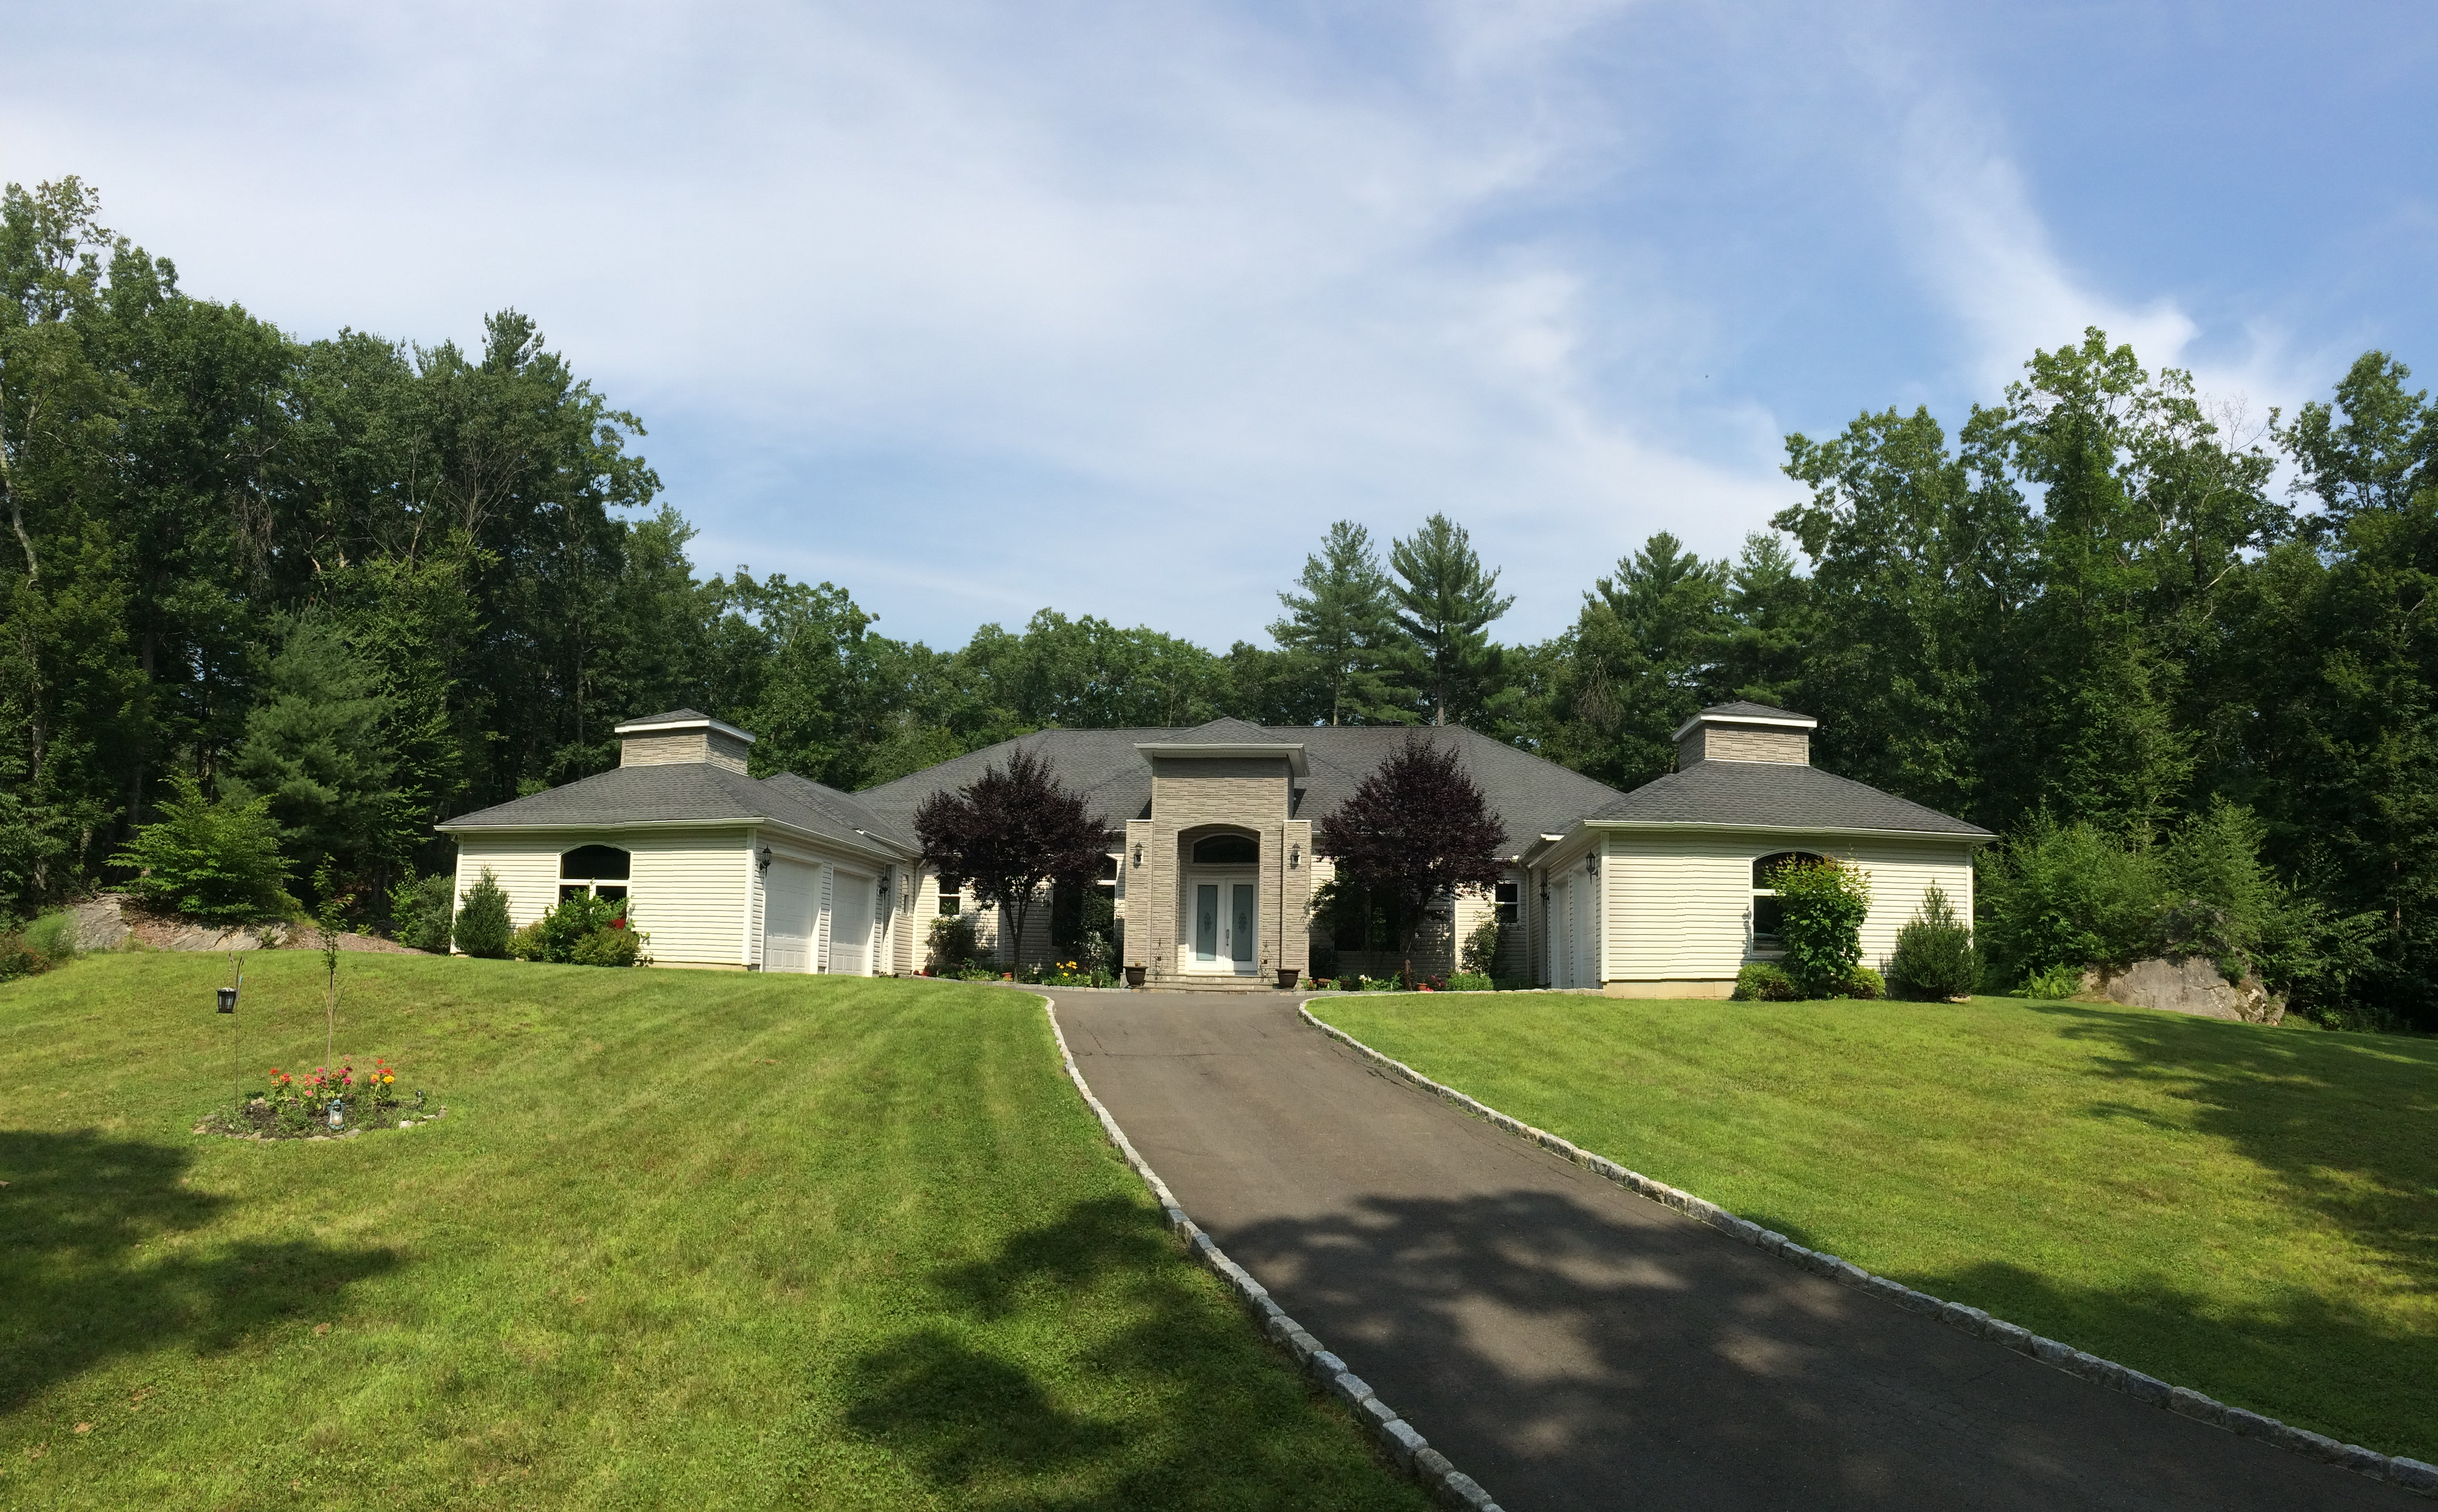 Single Family Home for Sale at Custom Designed Ranch 132 Stone Pit Rd Woodbury, Connecticut 06798 United States